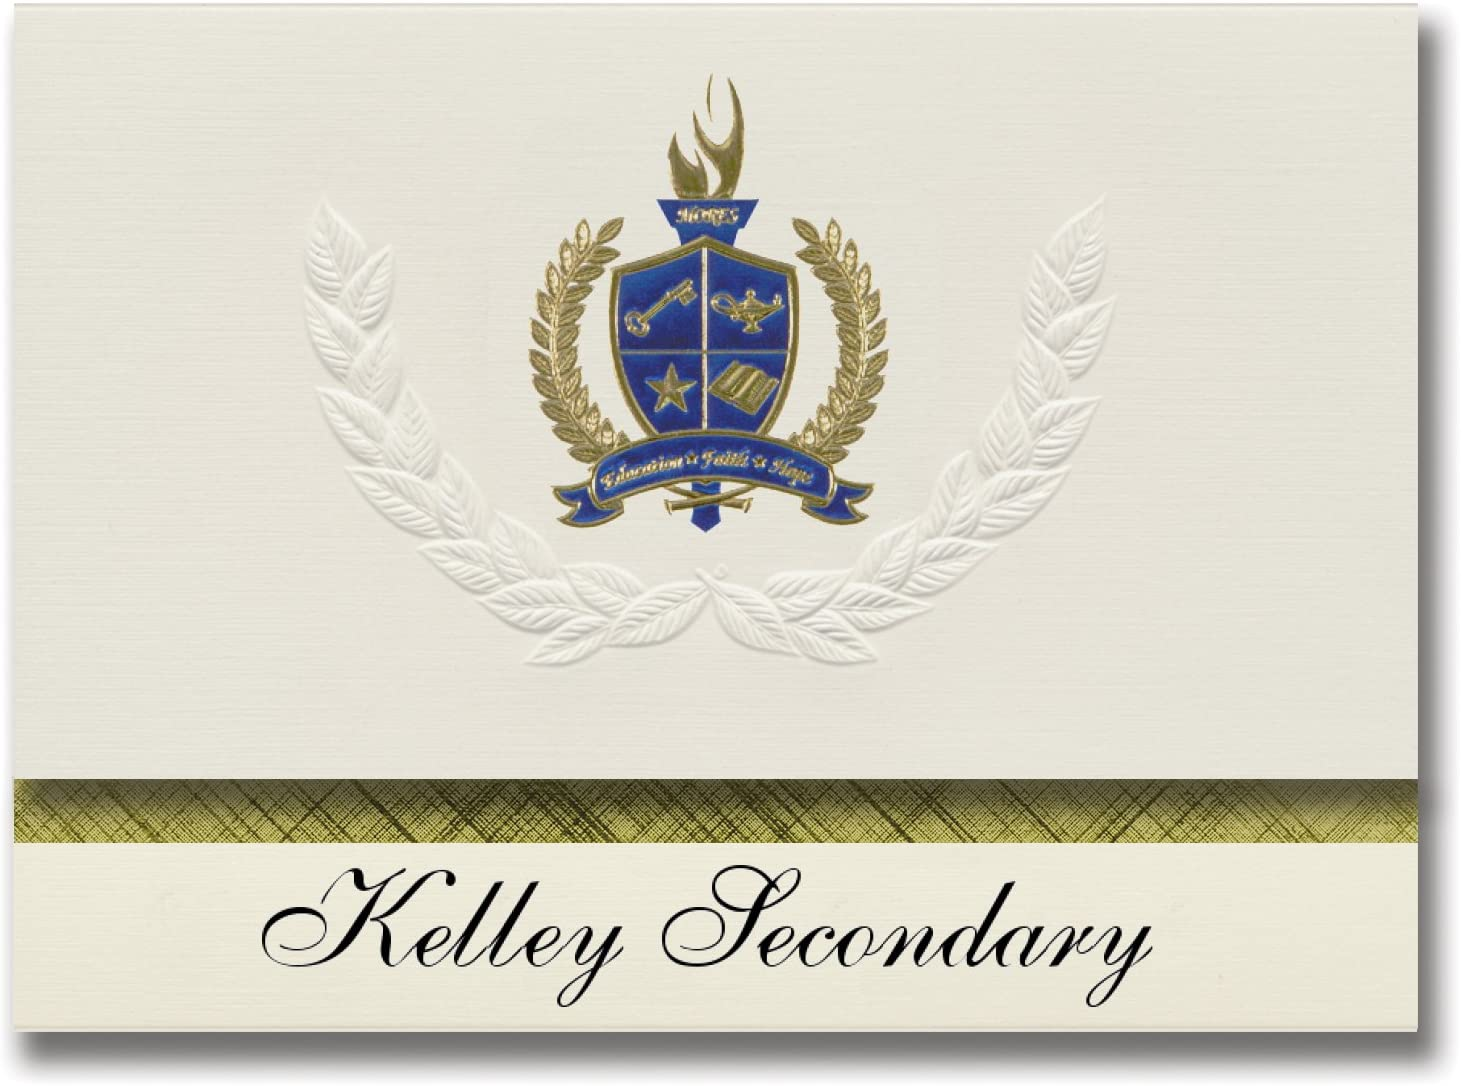 Signature Announcements Kelley Secondary (Silver Bay, MN) Graduation Announcements, Presidential style, Elite package of 25 with Gold & Blue Metallic Foil seal